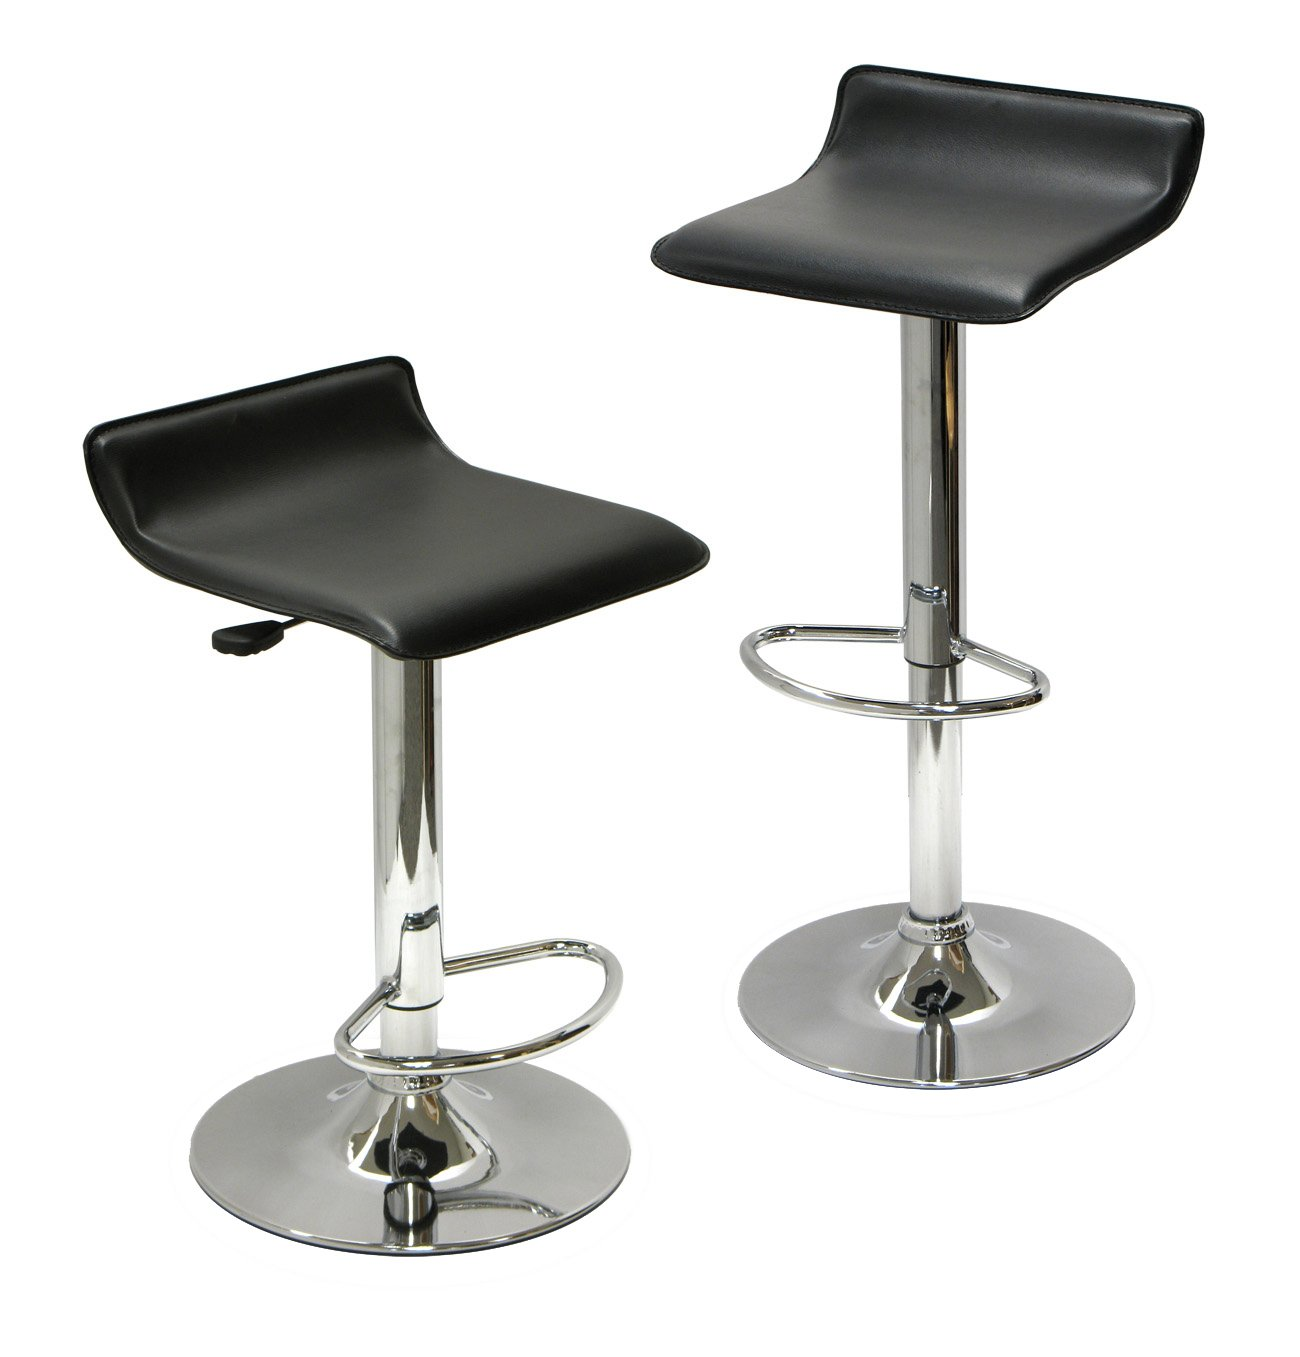 steel chair metal furniture stool accessories buy carbon at red bar stools chairs original prices best online pr lakdi